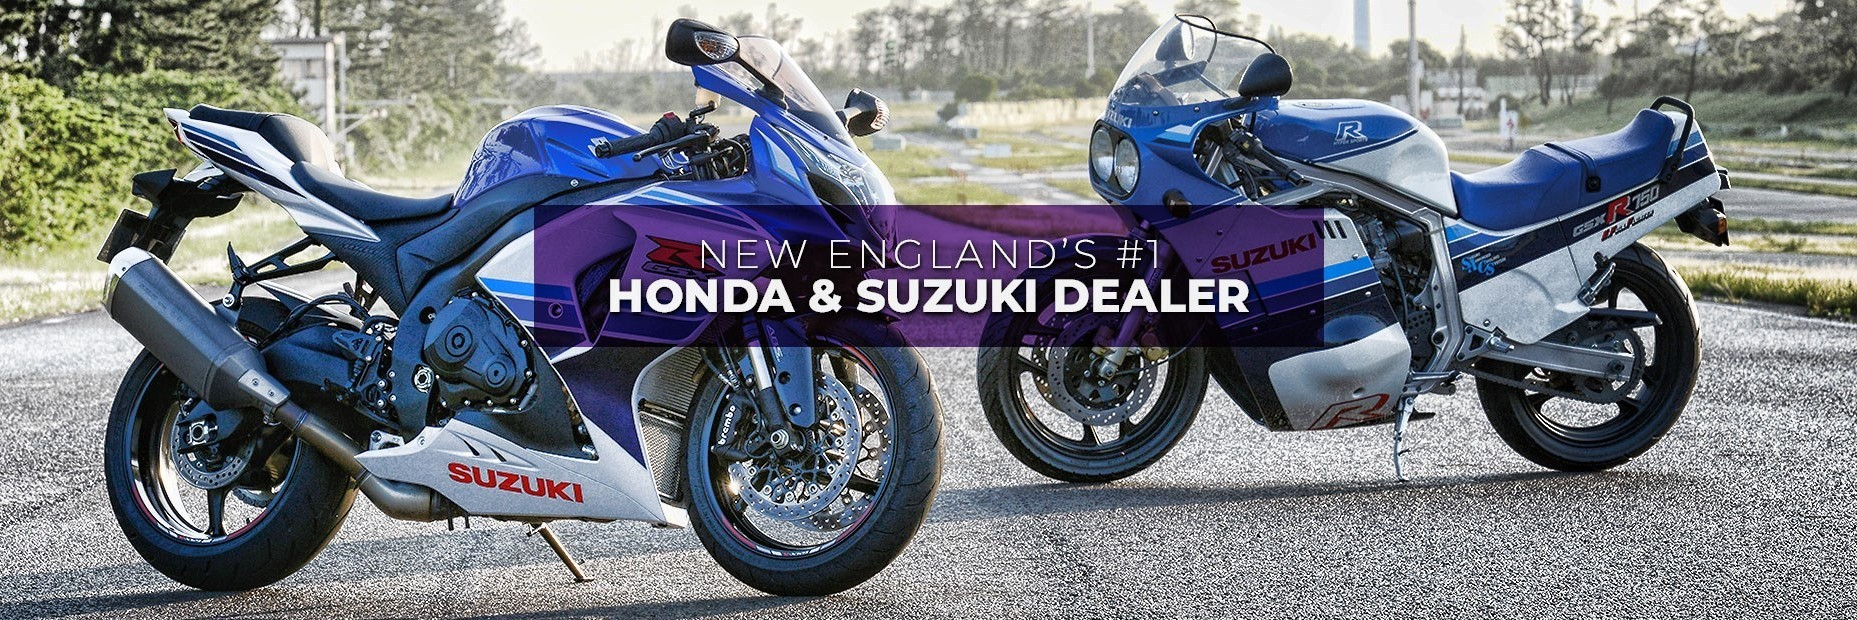 New and Used Motorsport Vehicles for Sale | West Bridgewater, MA